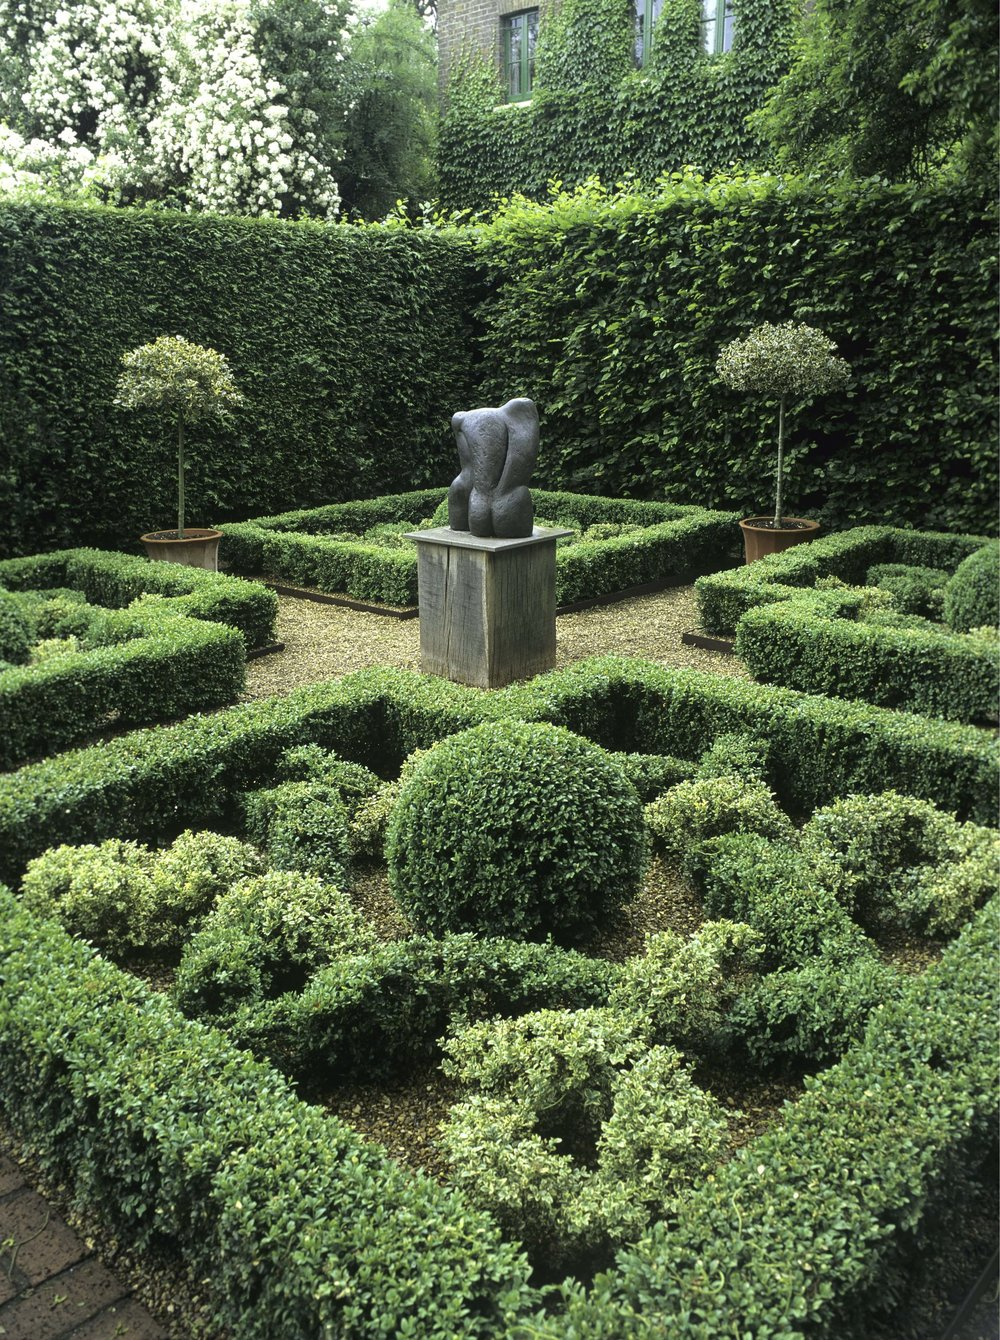 00748645+Fagus+Buxus+formal+knot+garden+sculpture-min.jpg